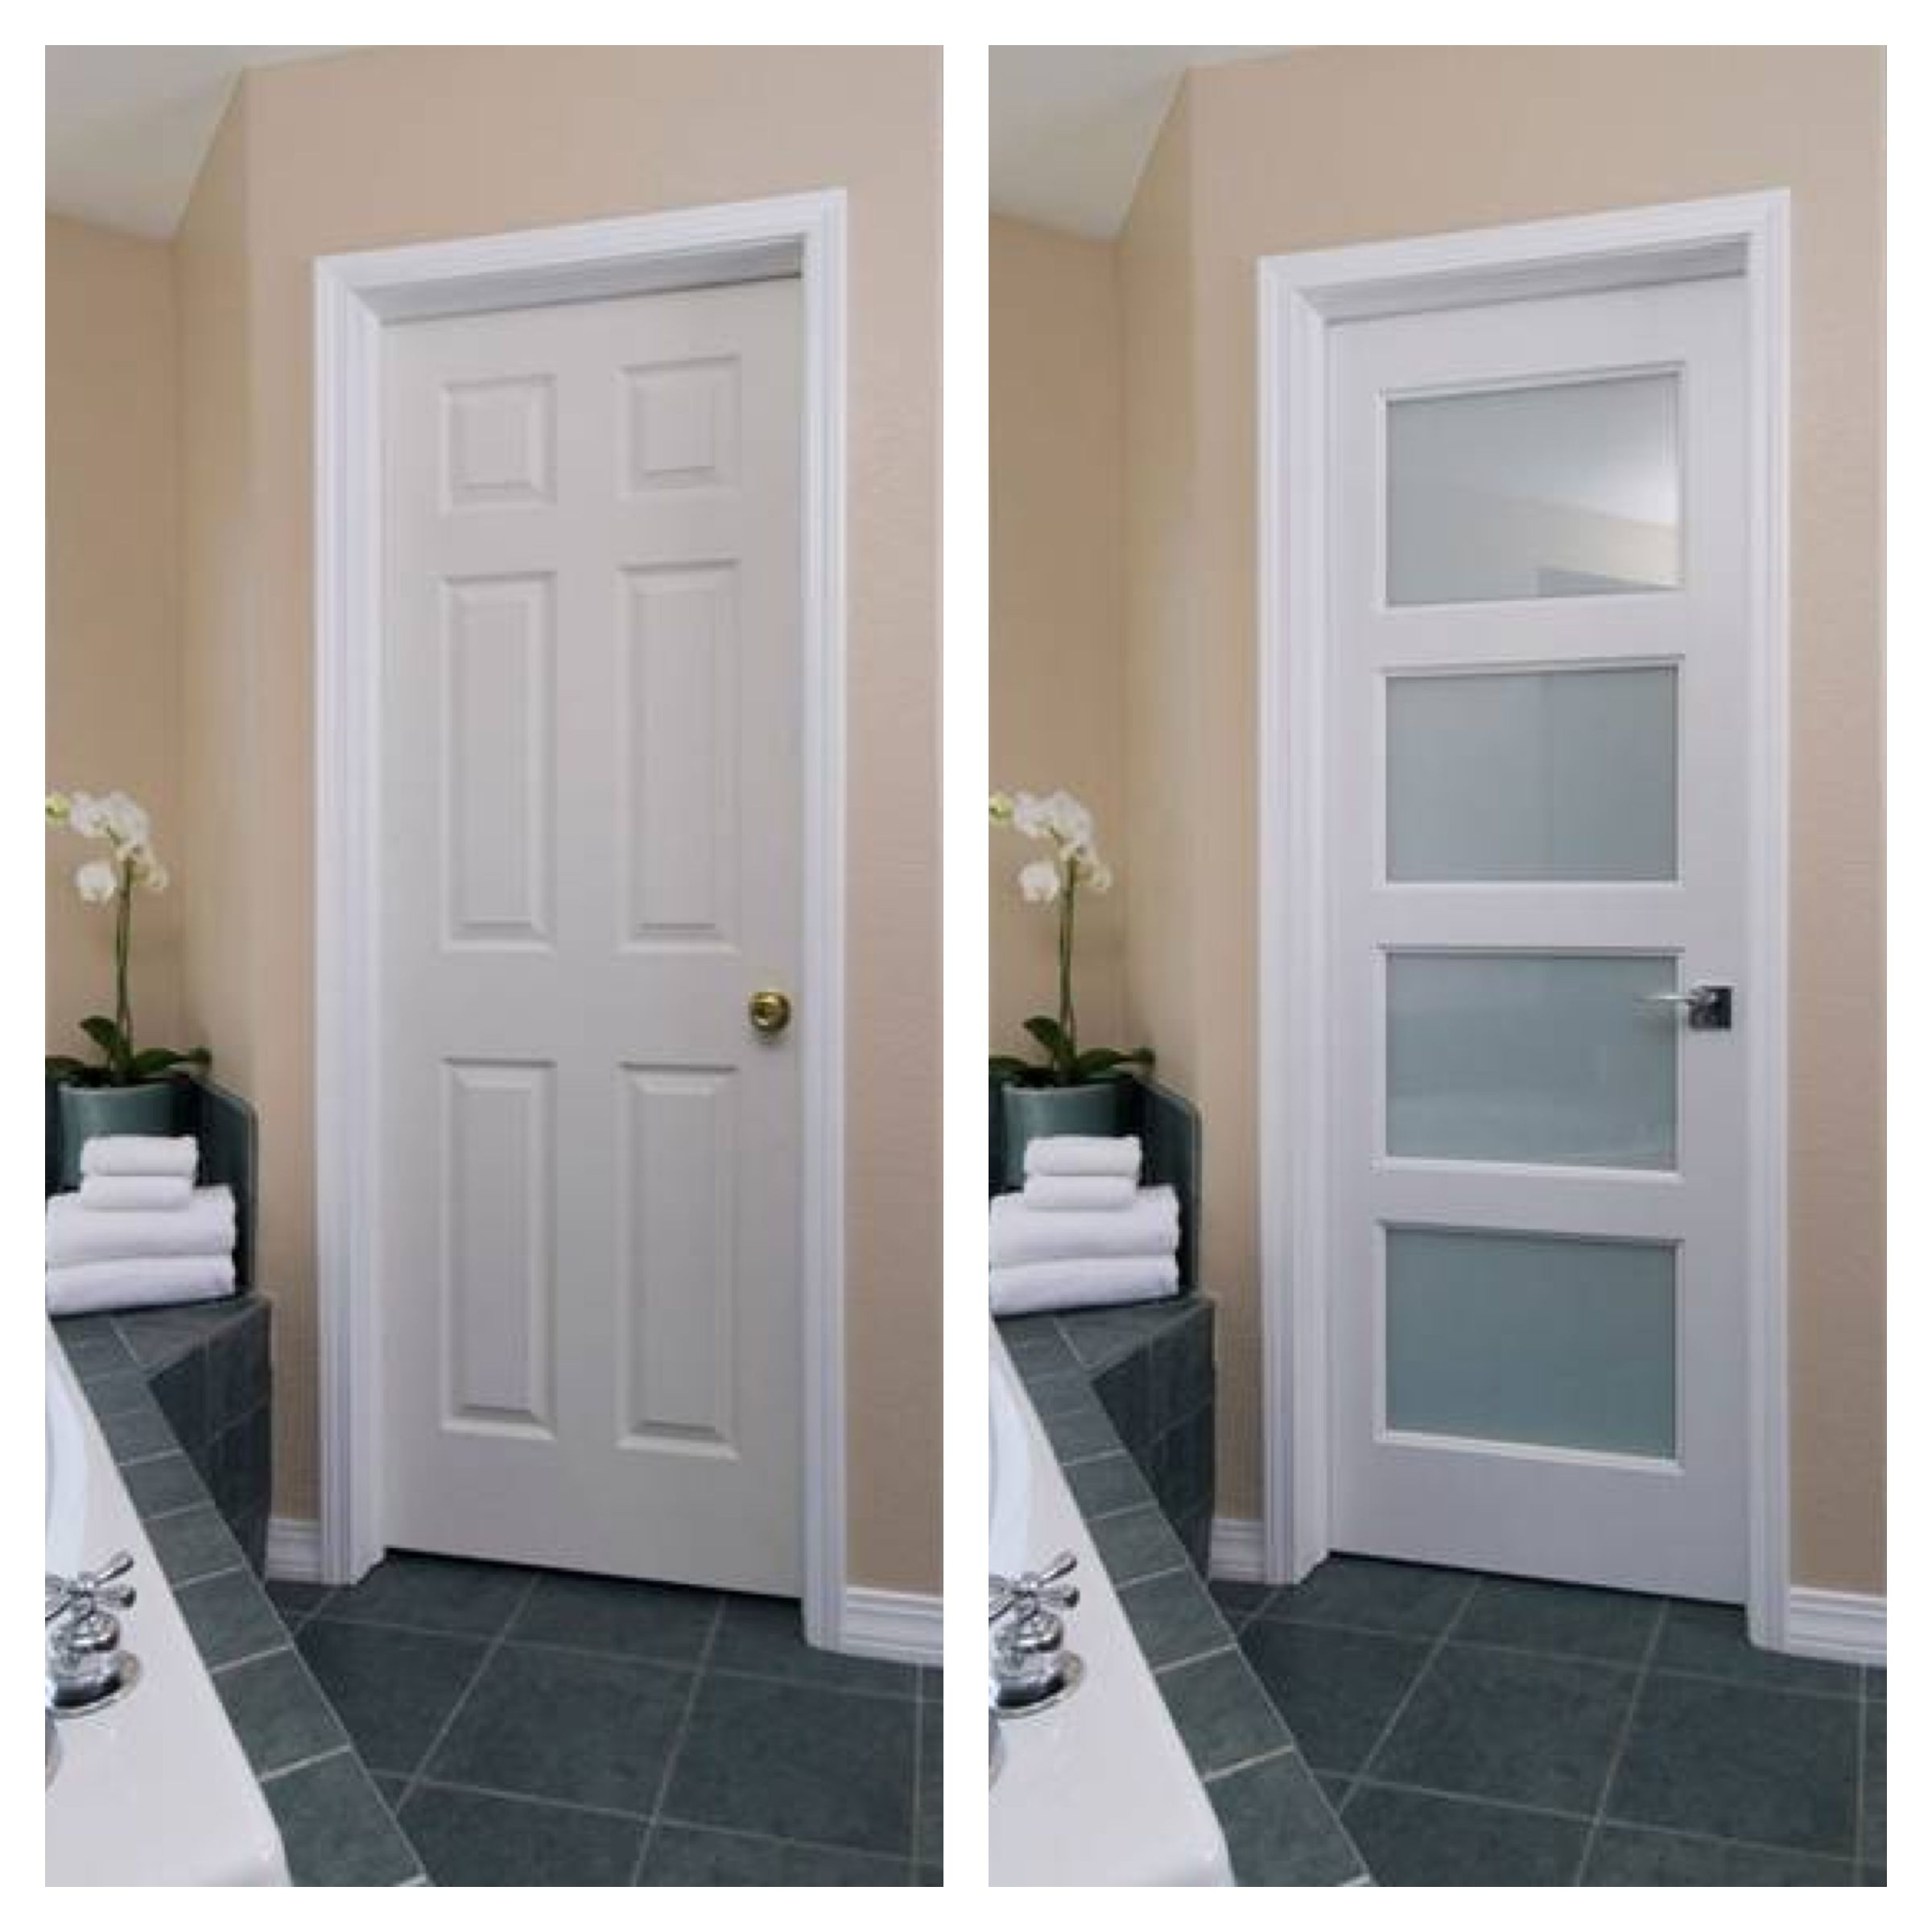 Before: Traditional Hollow Core Door After: Modern Solid Wood Door With  White Lami Glass